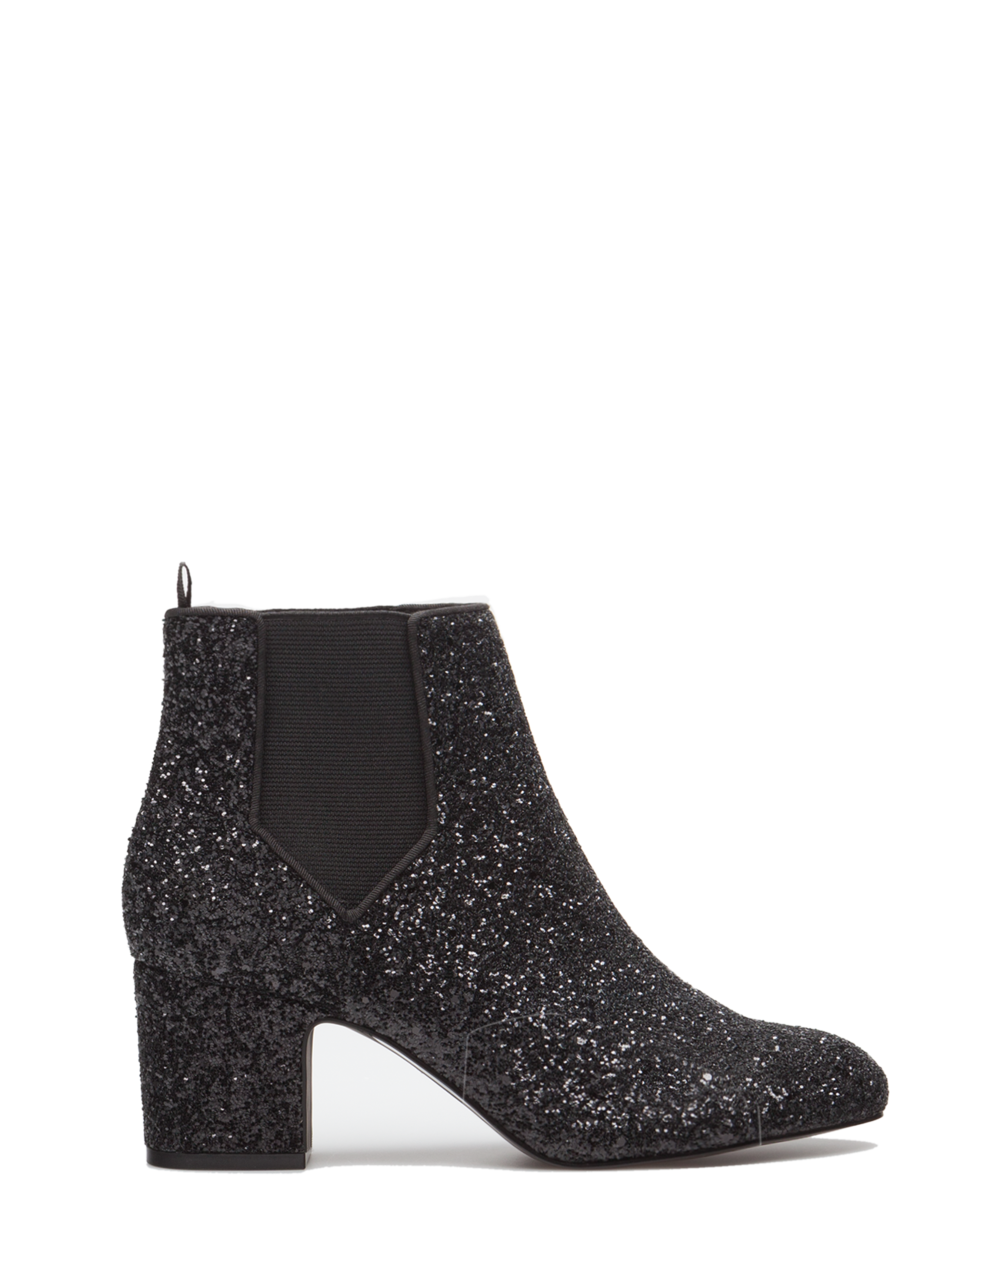 Stradivarius_fw15_shoes (5).png